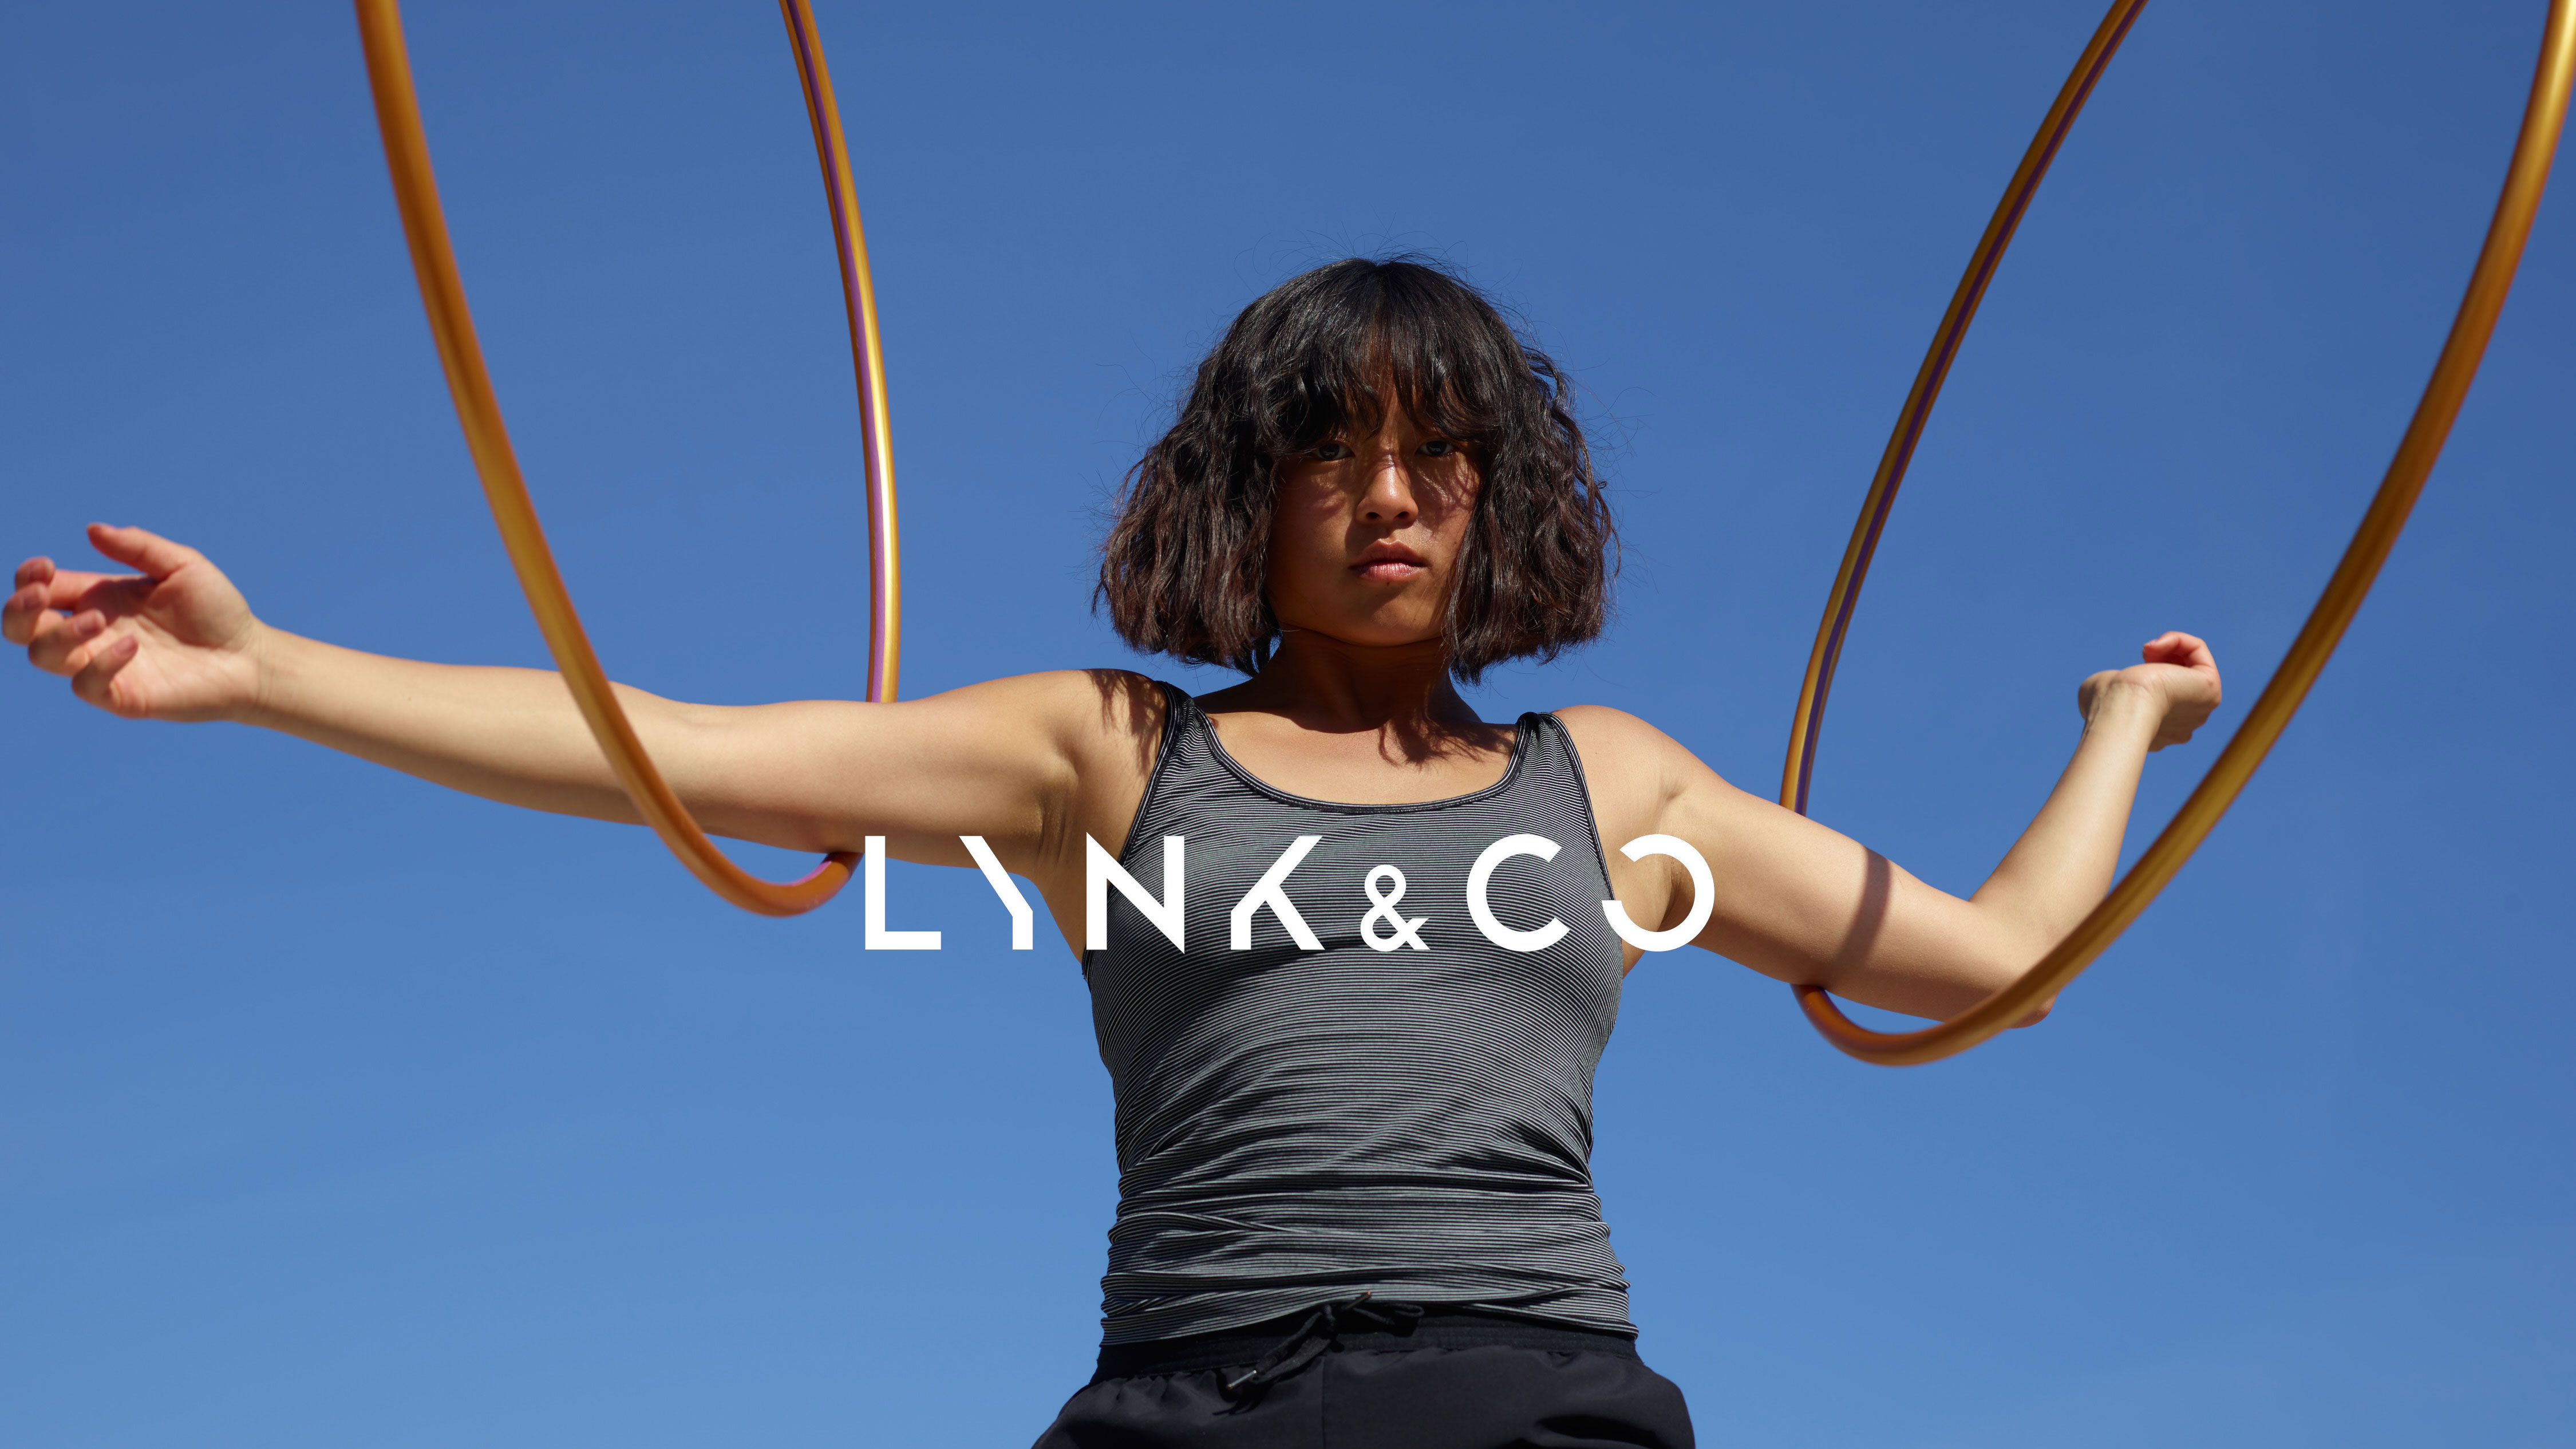 Lynk & Co — A new way to car